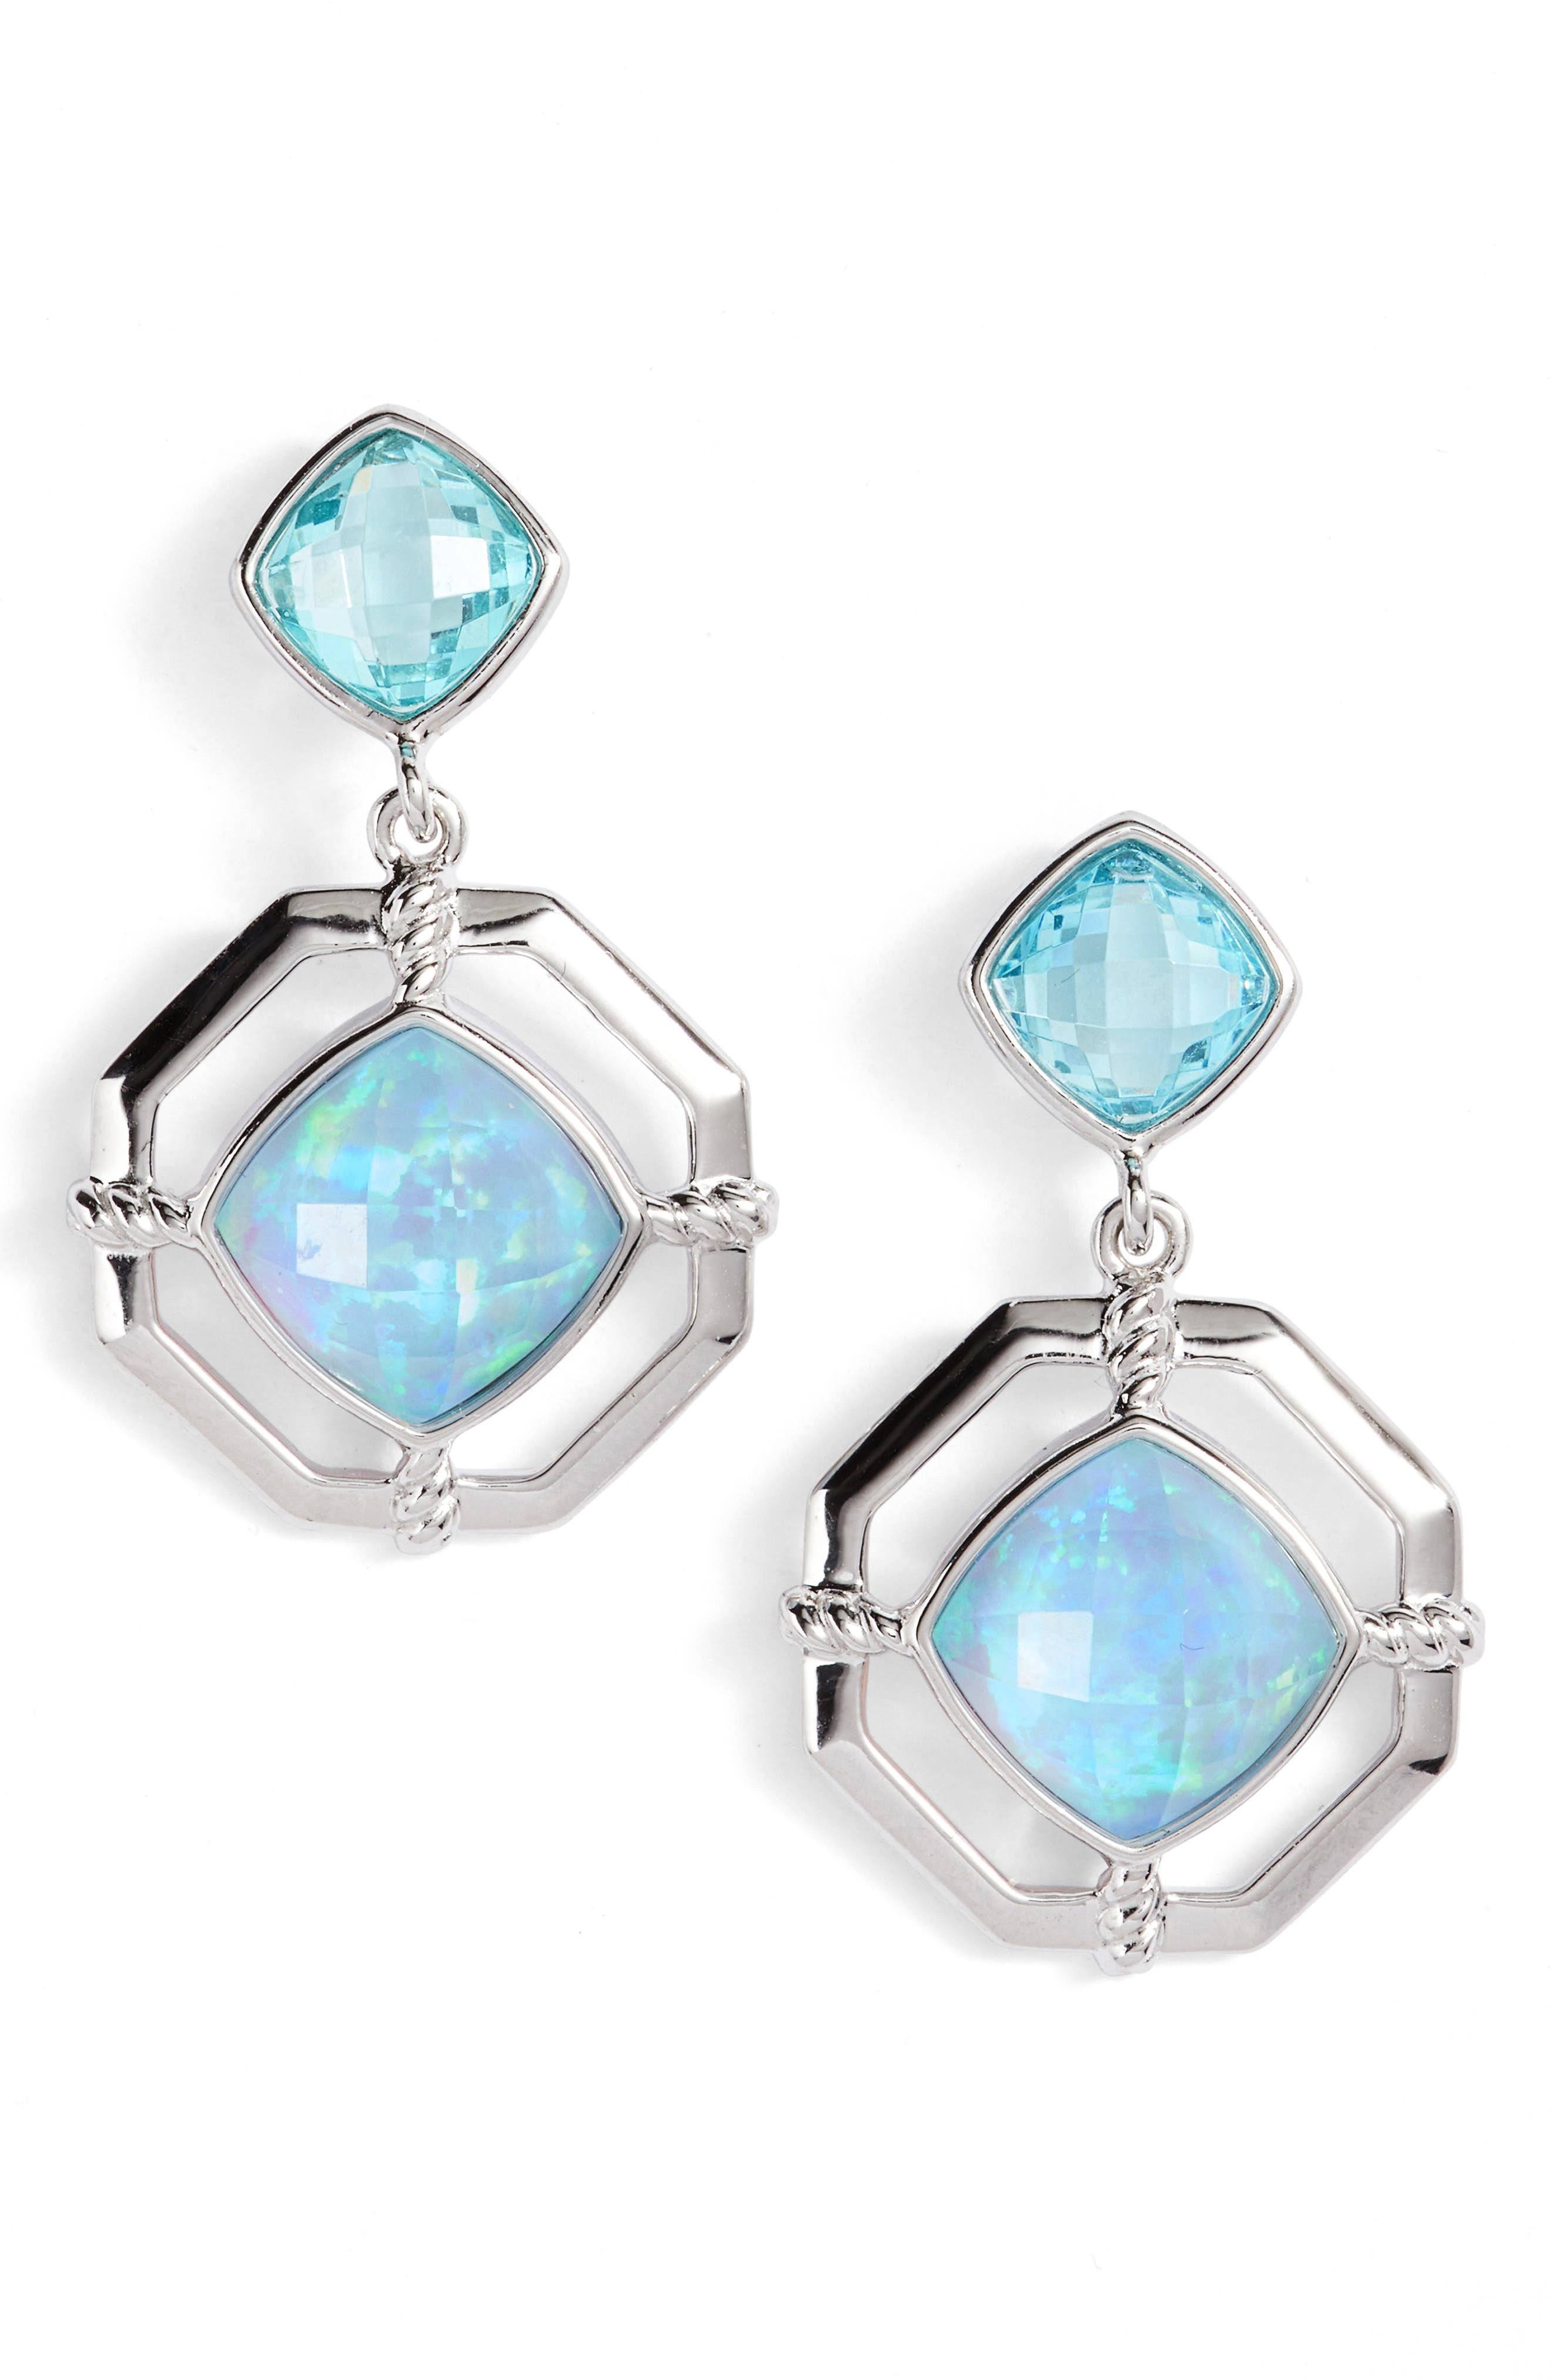 JUDITH JACK Paradise Double Drop Earrings